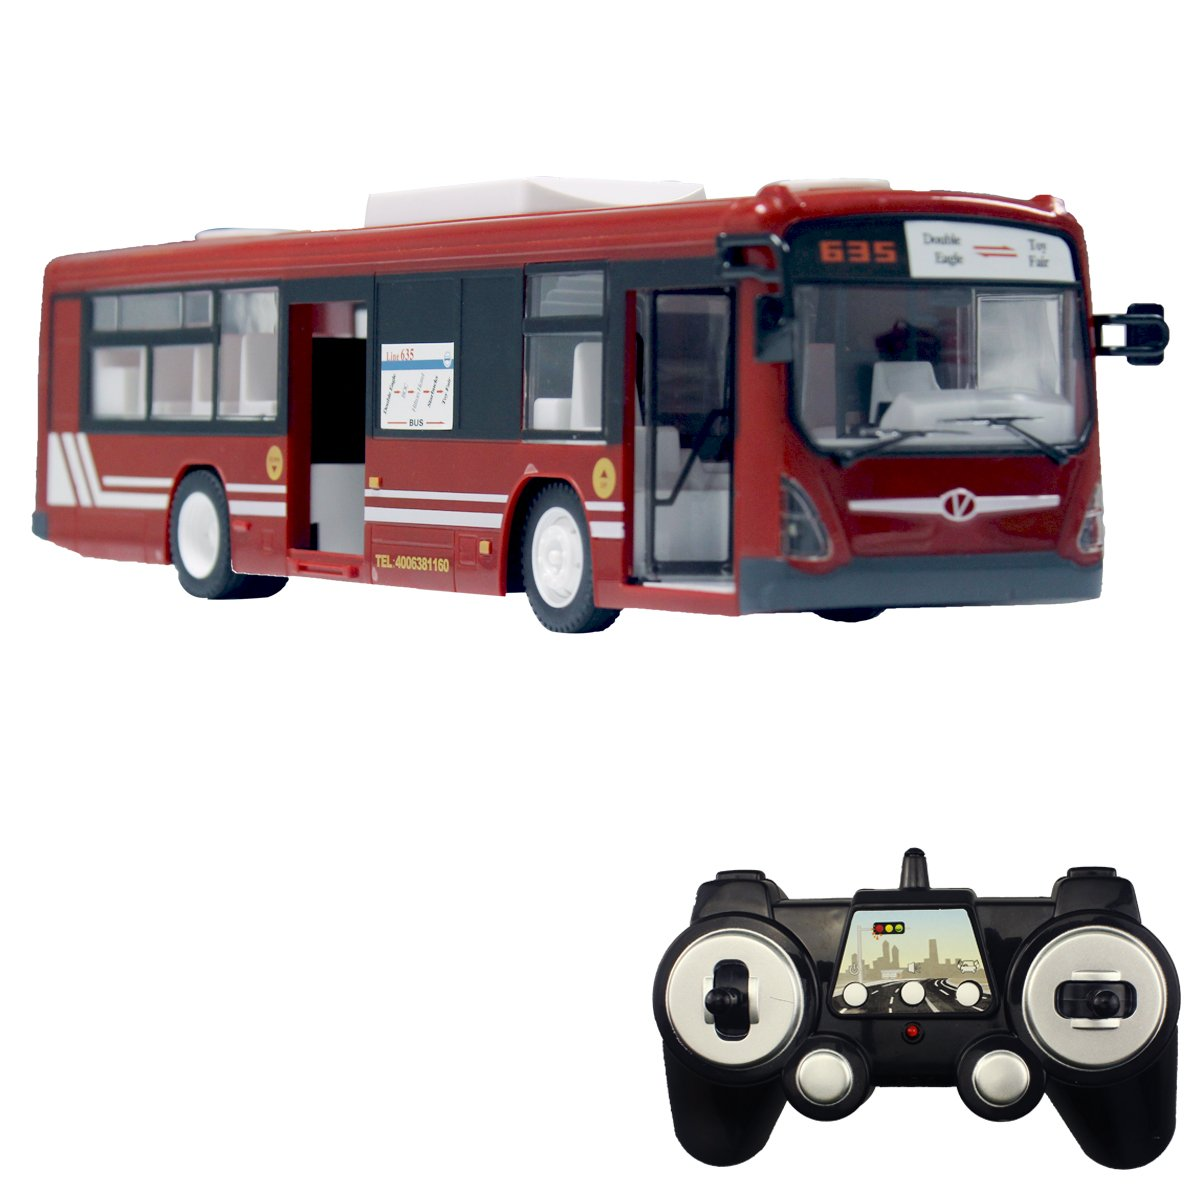 Fisca RC City Bus Remote Control Vehicles, 6 Ch 2.4G Opening Doors and Acceleration Function Toys Electronic Hobby Truck with Simulation Sound and Flashing Light (Red)